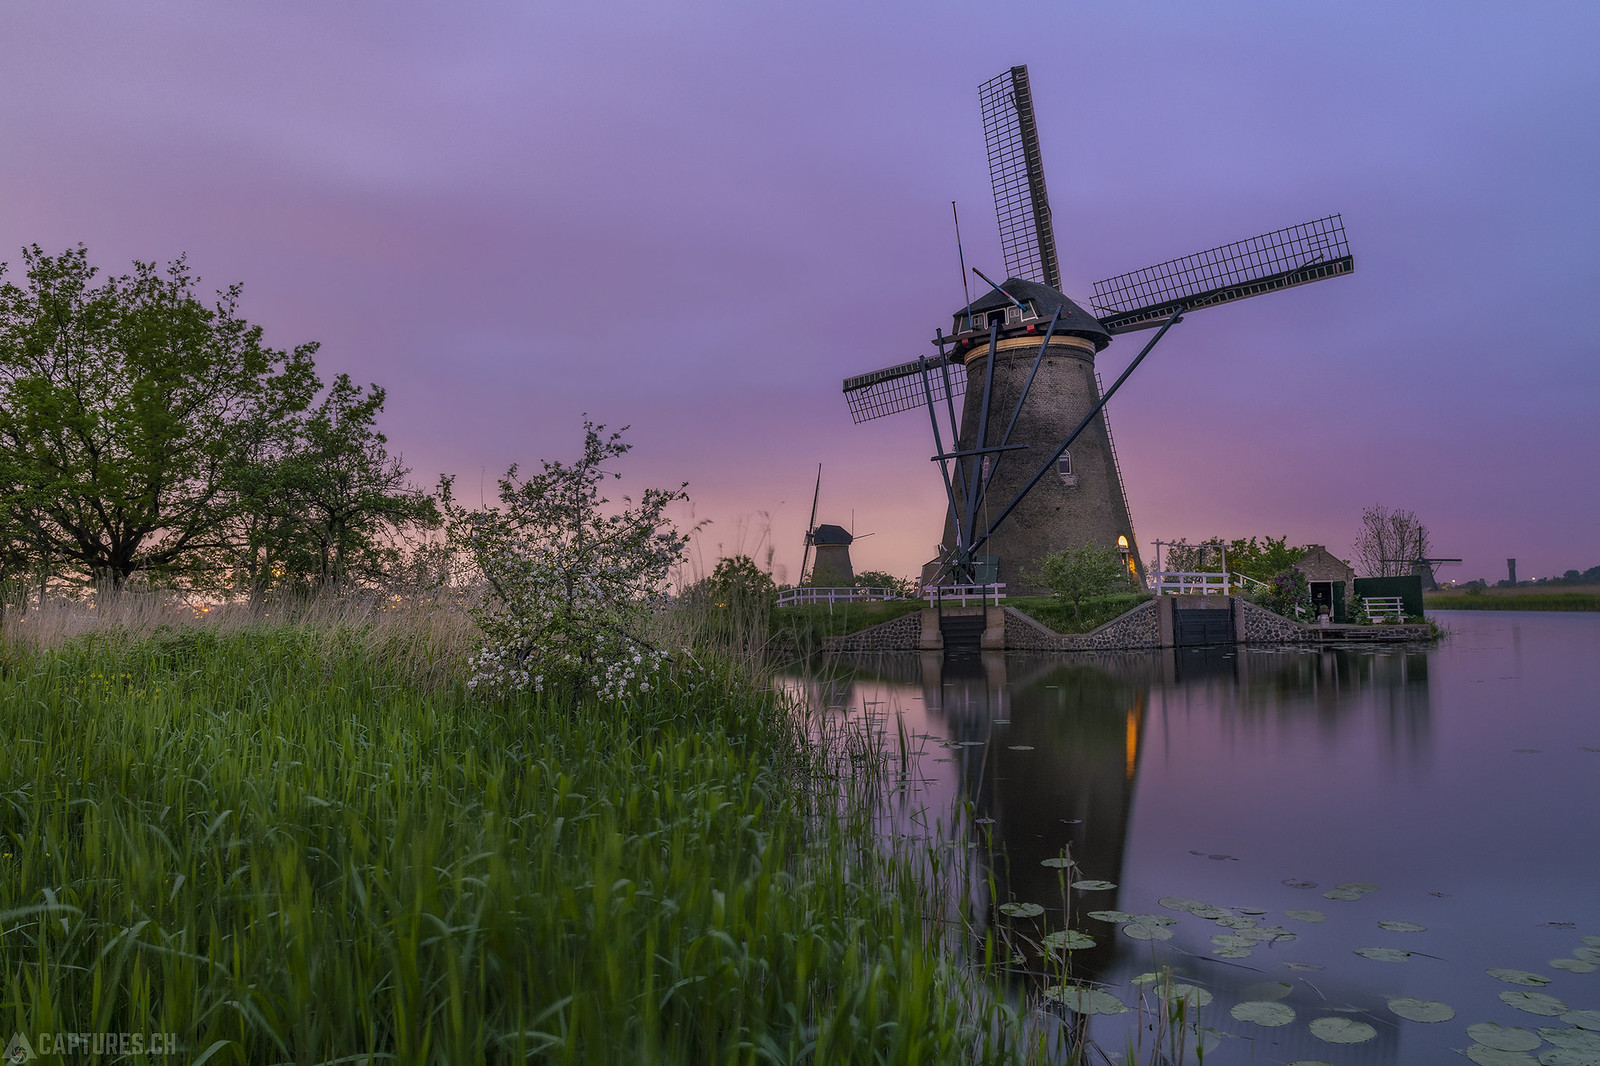 Dusk at the windmill - Kinderdijk